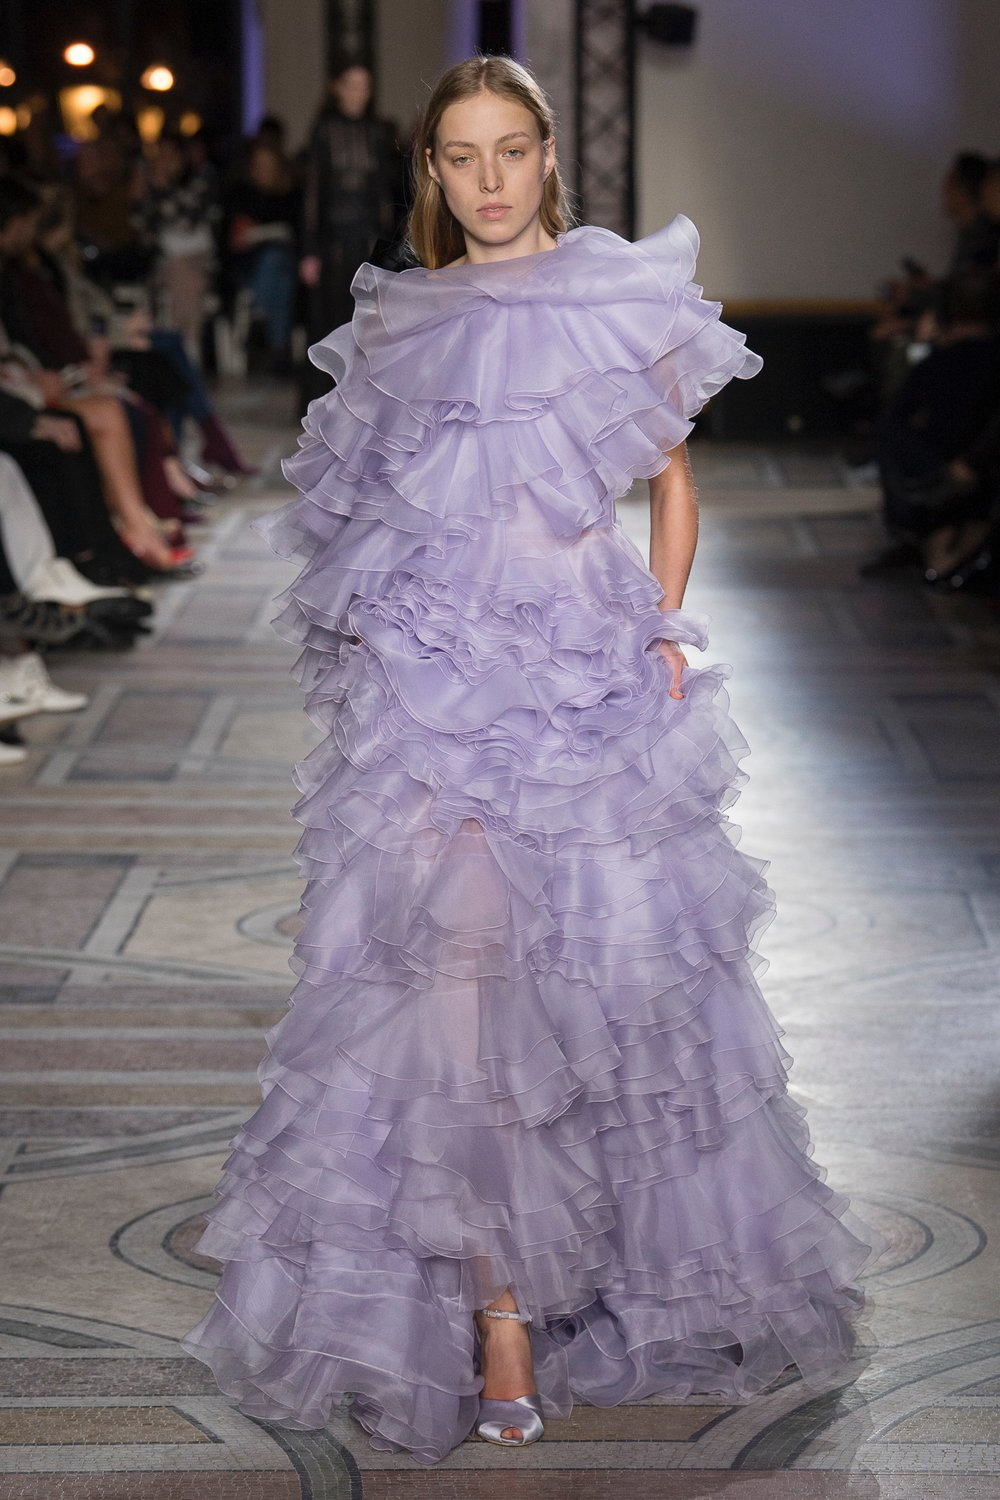 """A lot of people in fashion right now are a little bit scared of beauty. There's a lot of research into intellectual beauty, alternative beauty, a more edgy beauty, to break the rules. But I'm the opposite. I love the idea of something harmonious, sensual, romantic."" - Giambattista Valli"